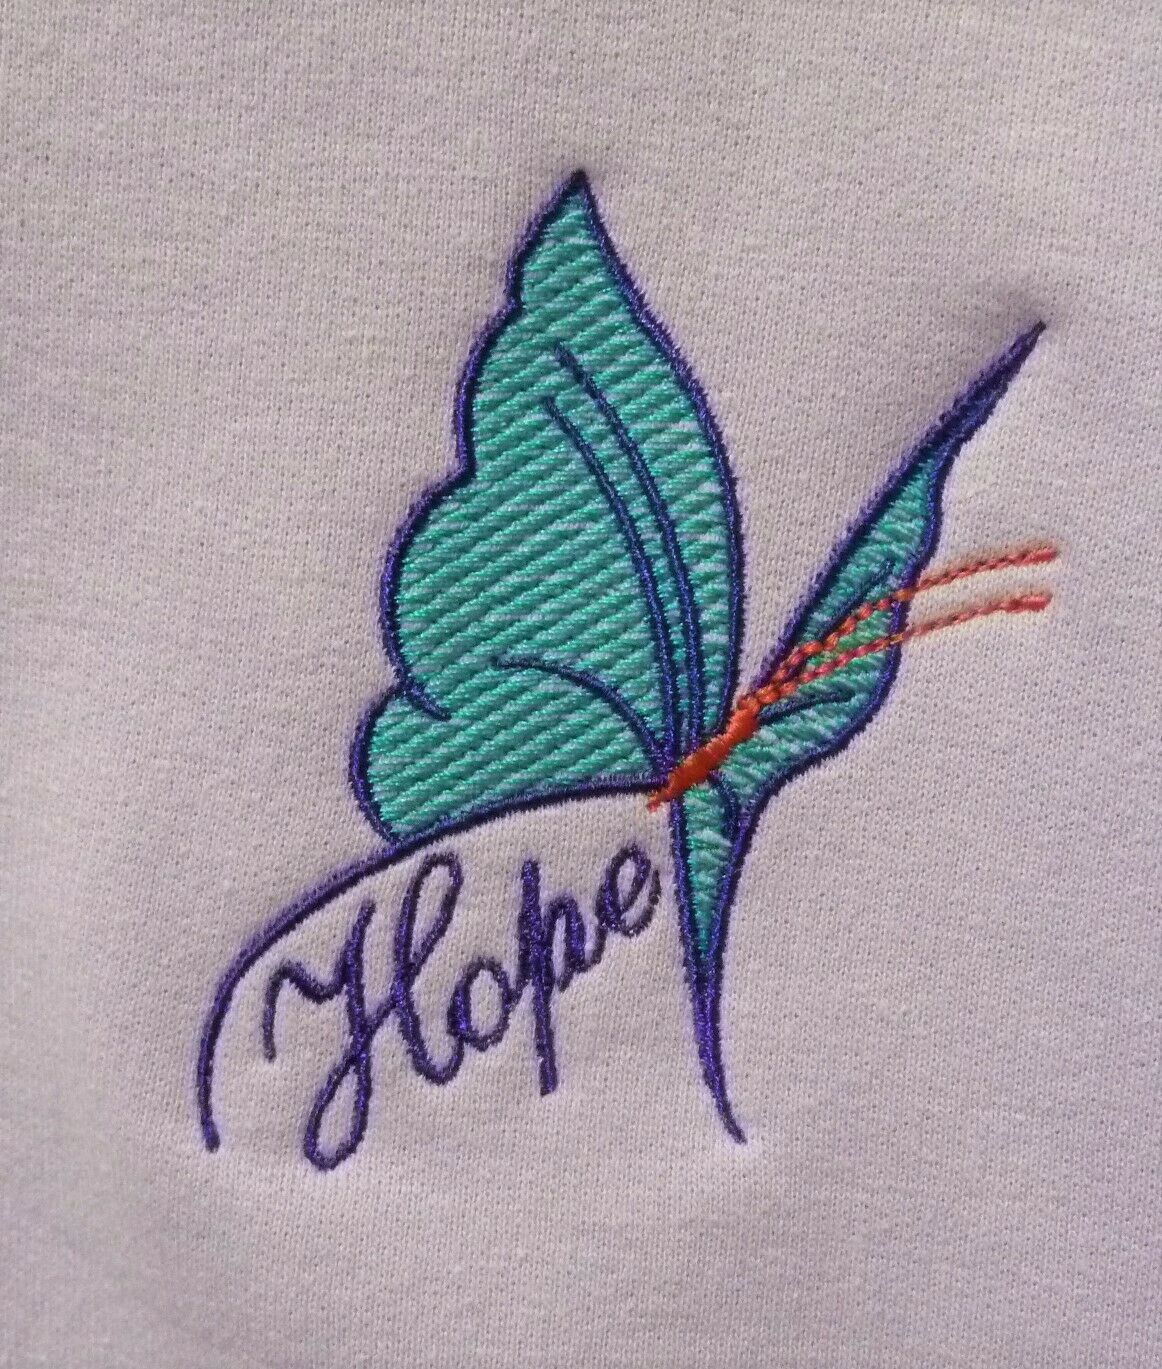 Primary image for Purple/Turquoise Butterfly HOPE Crew 4X Orchid Sweatshirt Cancer Aware Unisex Nw